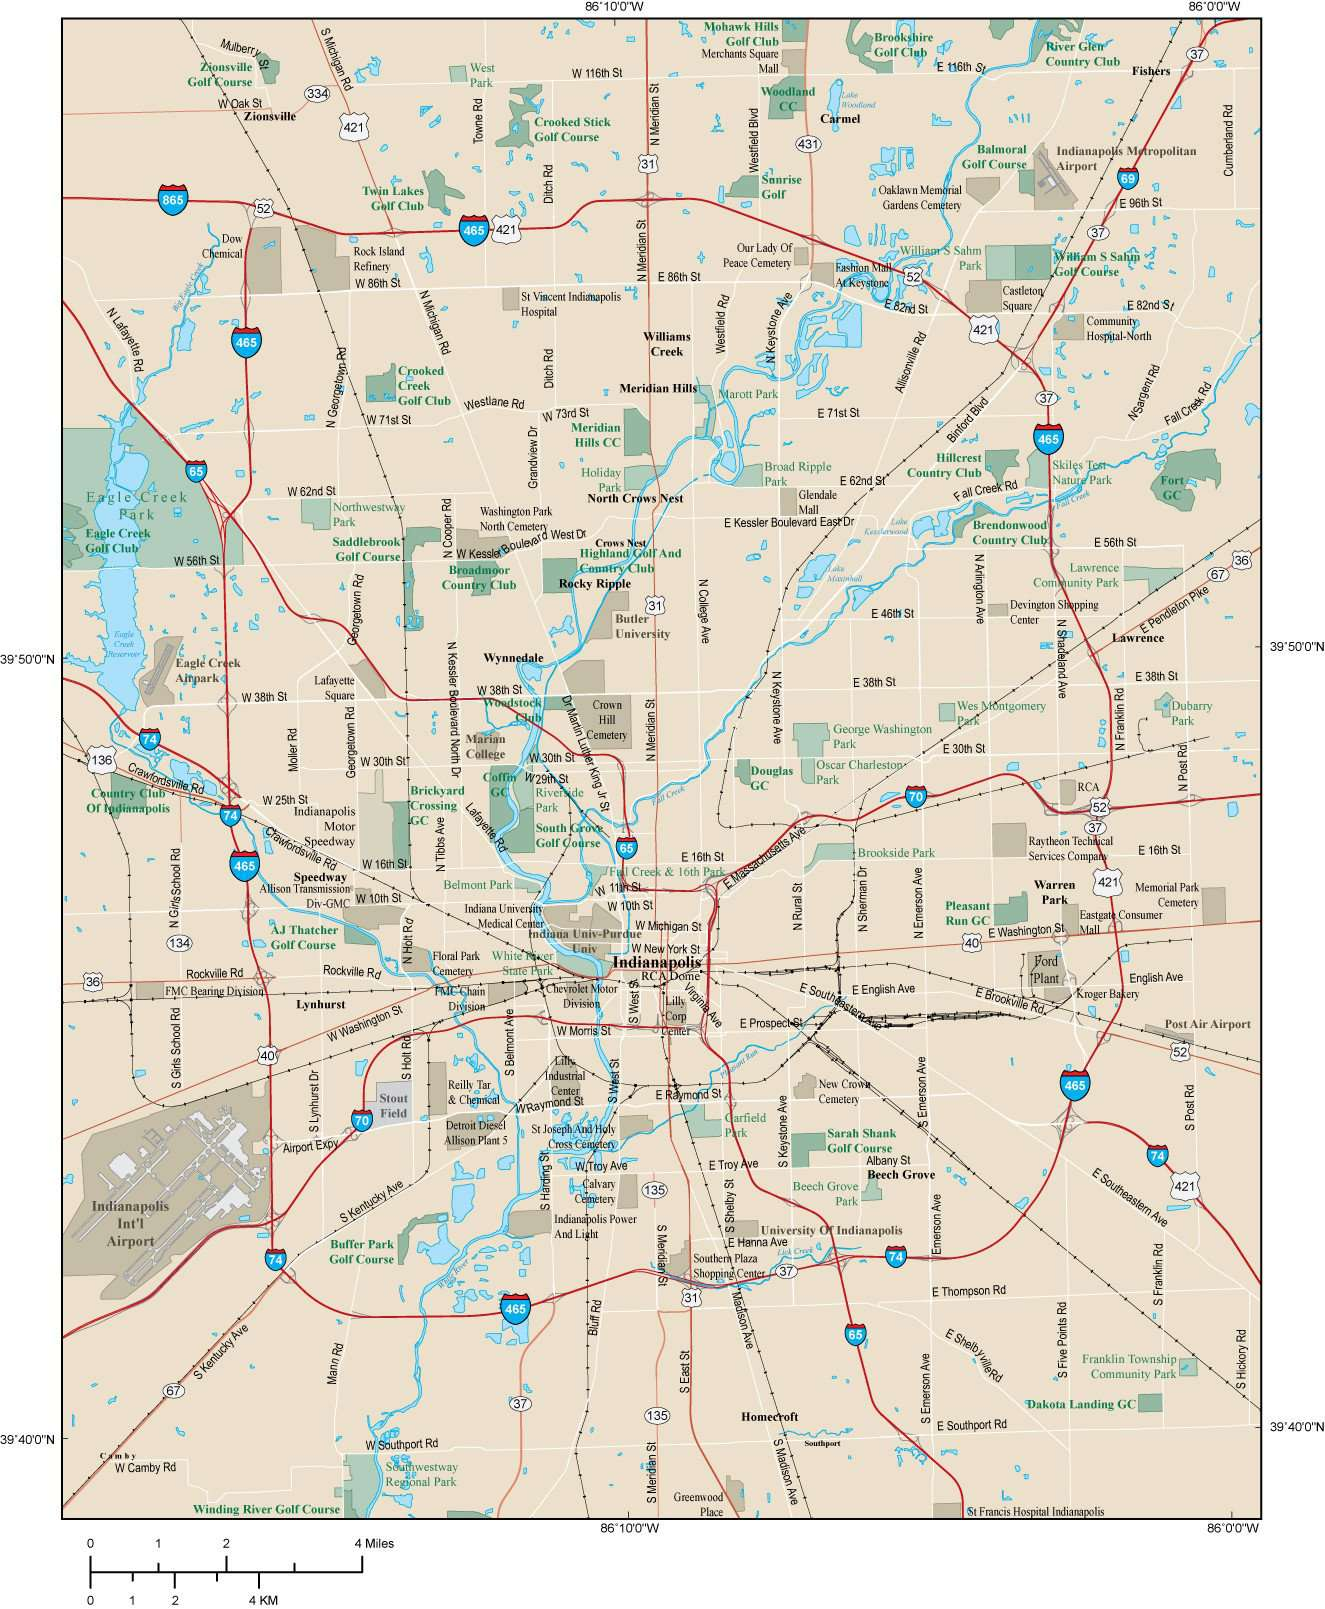 Indianapolis Road Map on indianapolis construction map, indianapolis country map, indianapolis education map, indianapolis stadium map, indianapolis travel map, indianapolis water map, indianapolis bar map, indianapolis bicycle map, indianapolis mall map, indianapolis topographic map, artwork of indianapolis map, indianapolis indiana map, indianapolis monorail map, indianapolis blvd map, indianapolis street map, indianapolis light rail map, indianapolis sewer map, indianapolis walkway map, indianapolis waterways map, indianapolis beach map,